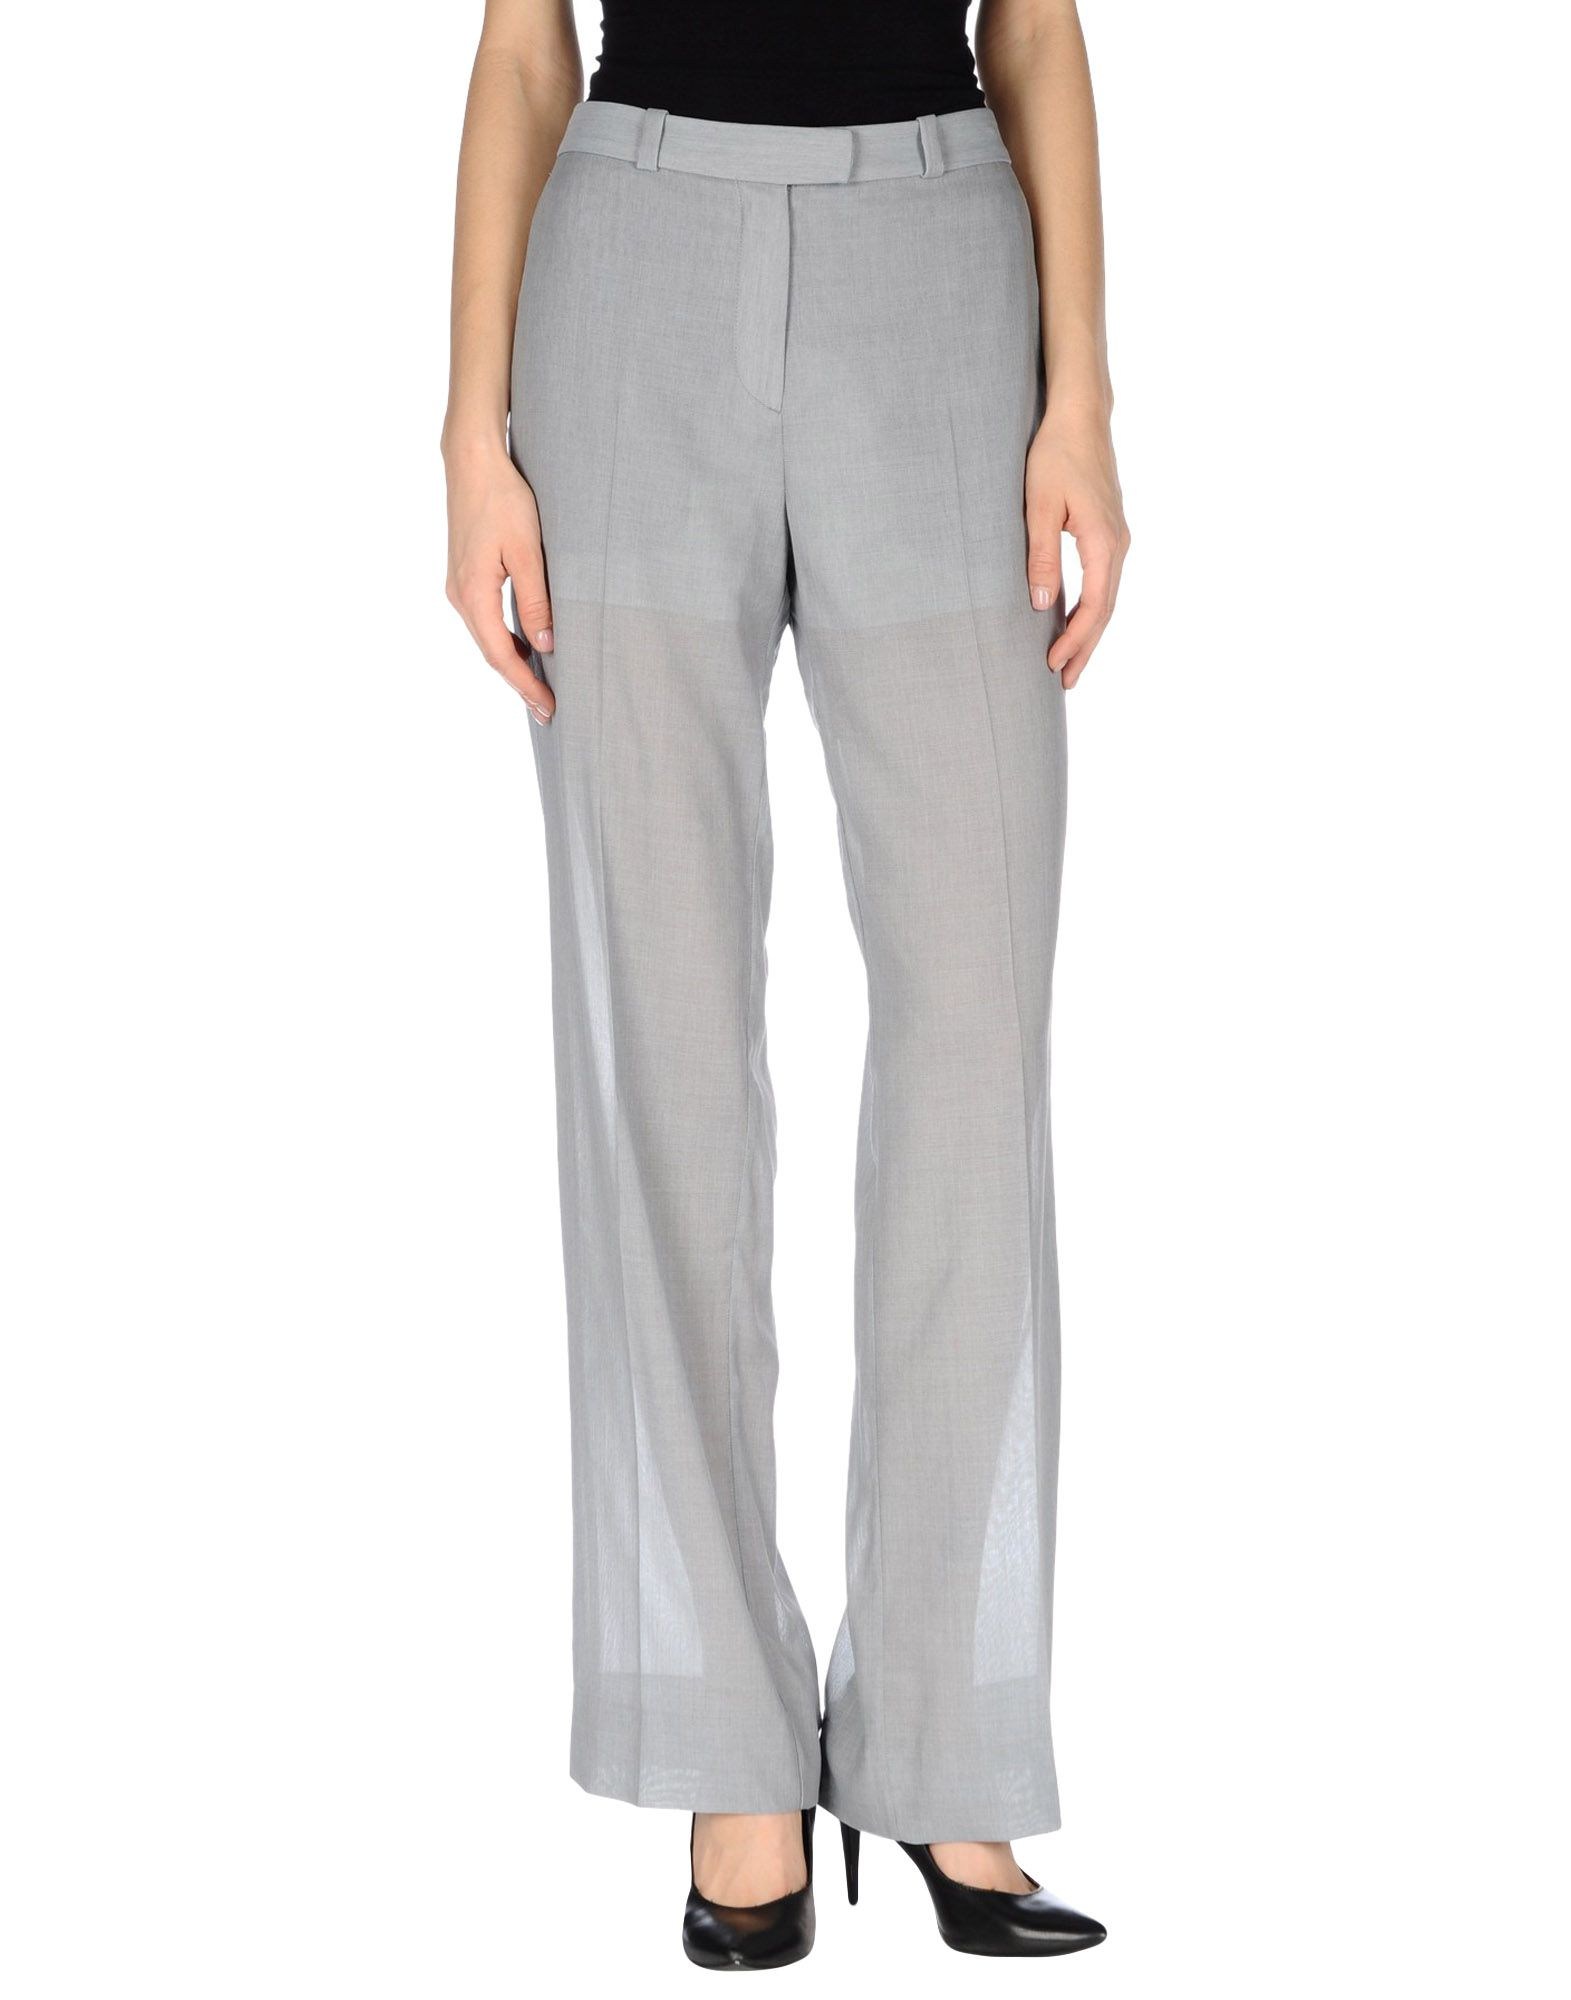 Maison margiela formal trouser in gray light grey lyst for 10 moulmein rise la maison